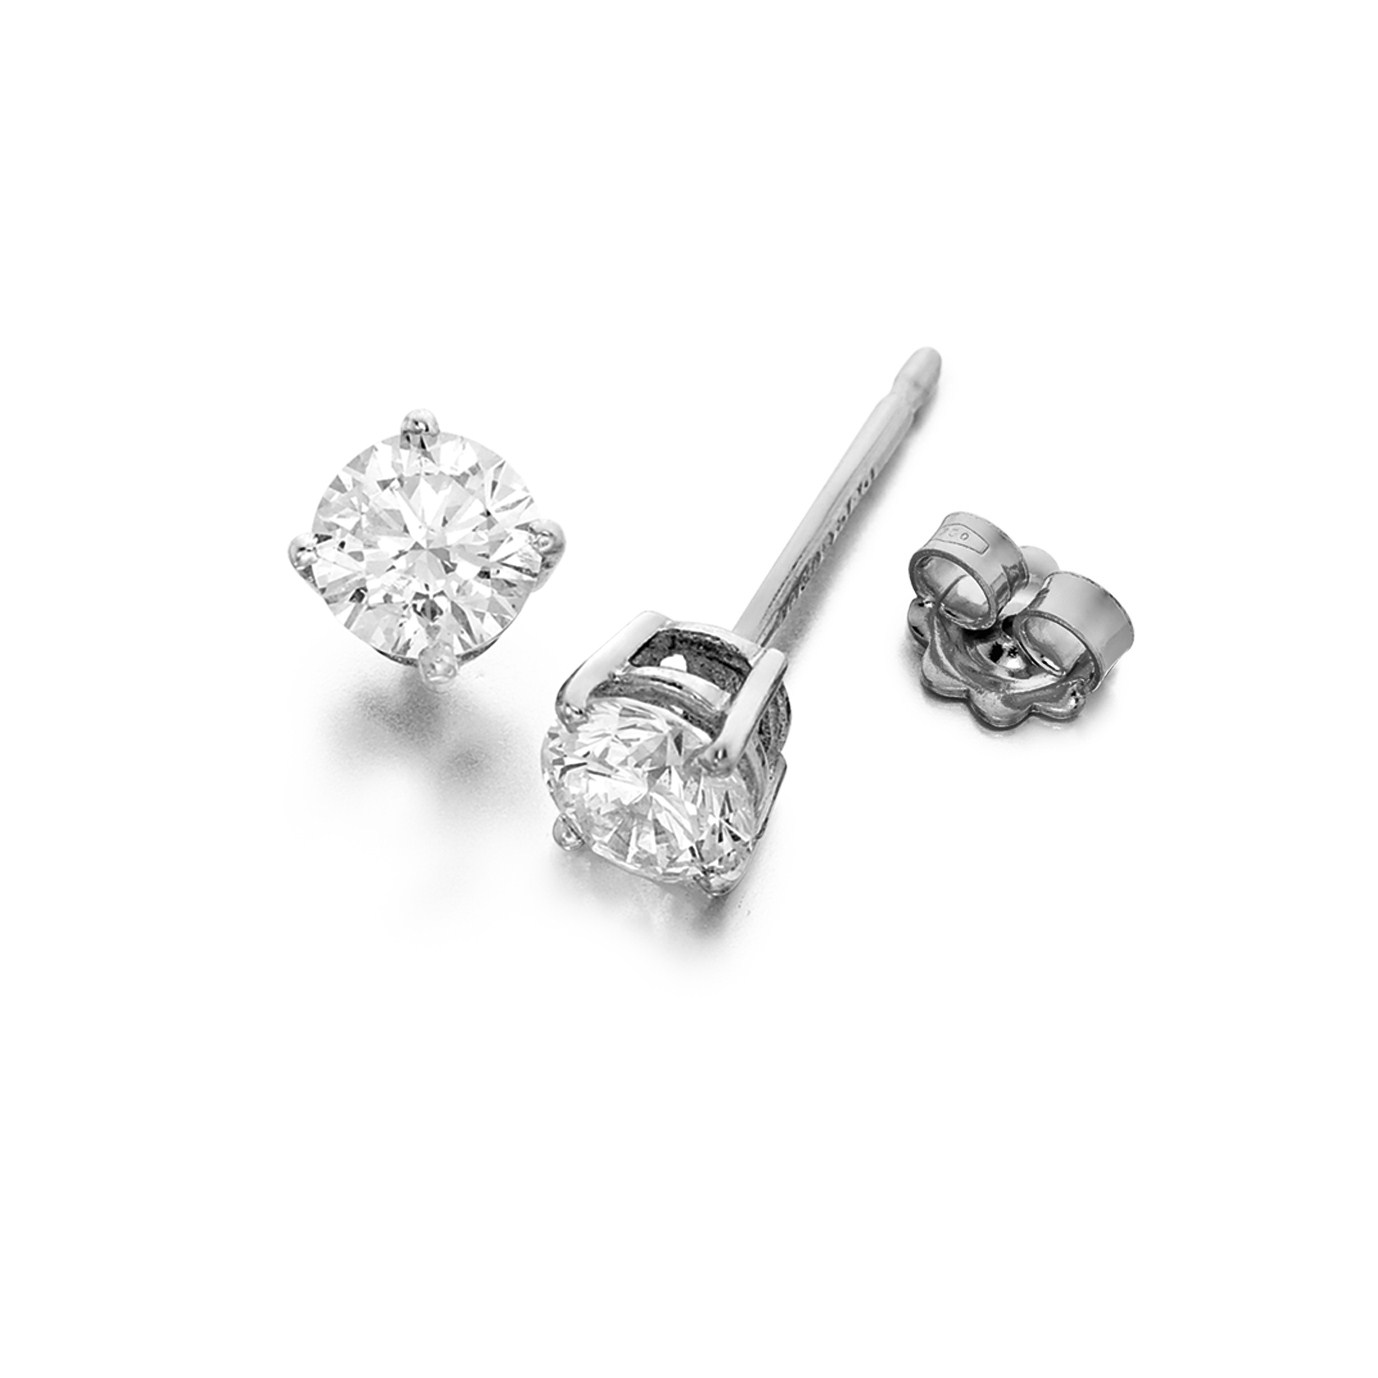 Diamond Stud Earrings 0.90cts G/H Si 18 Carat White Gold